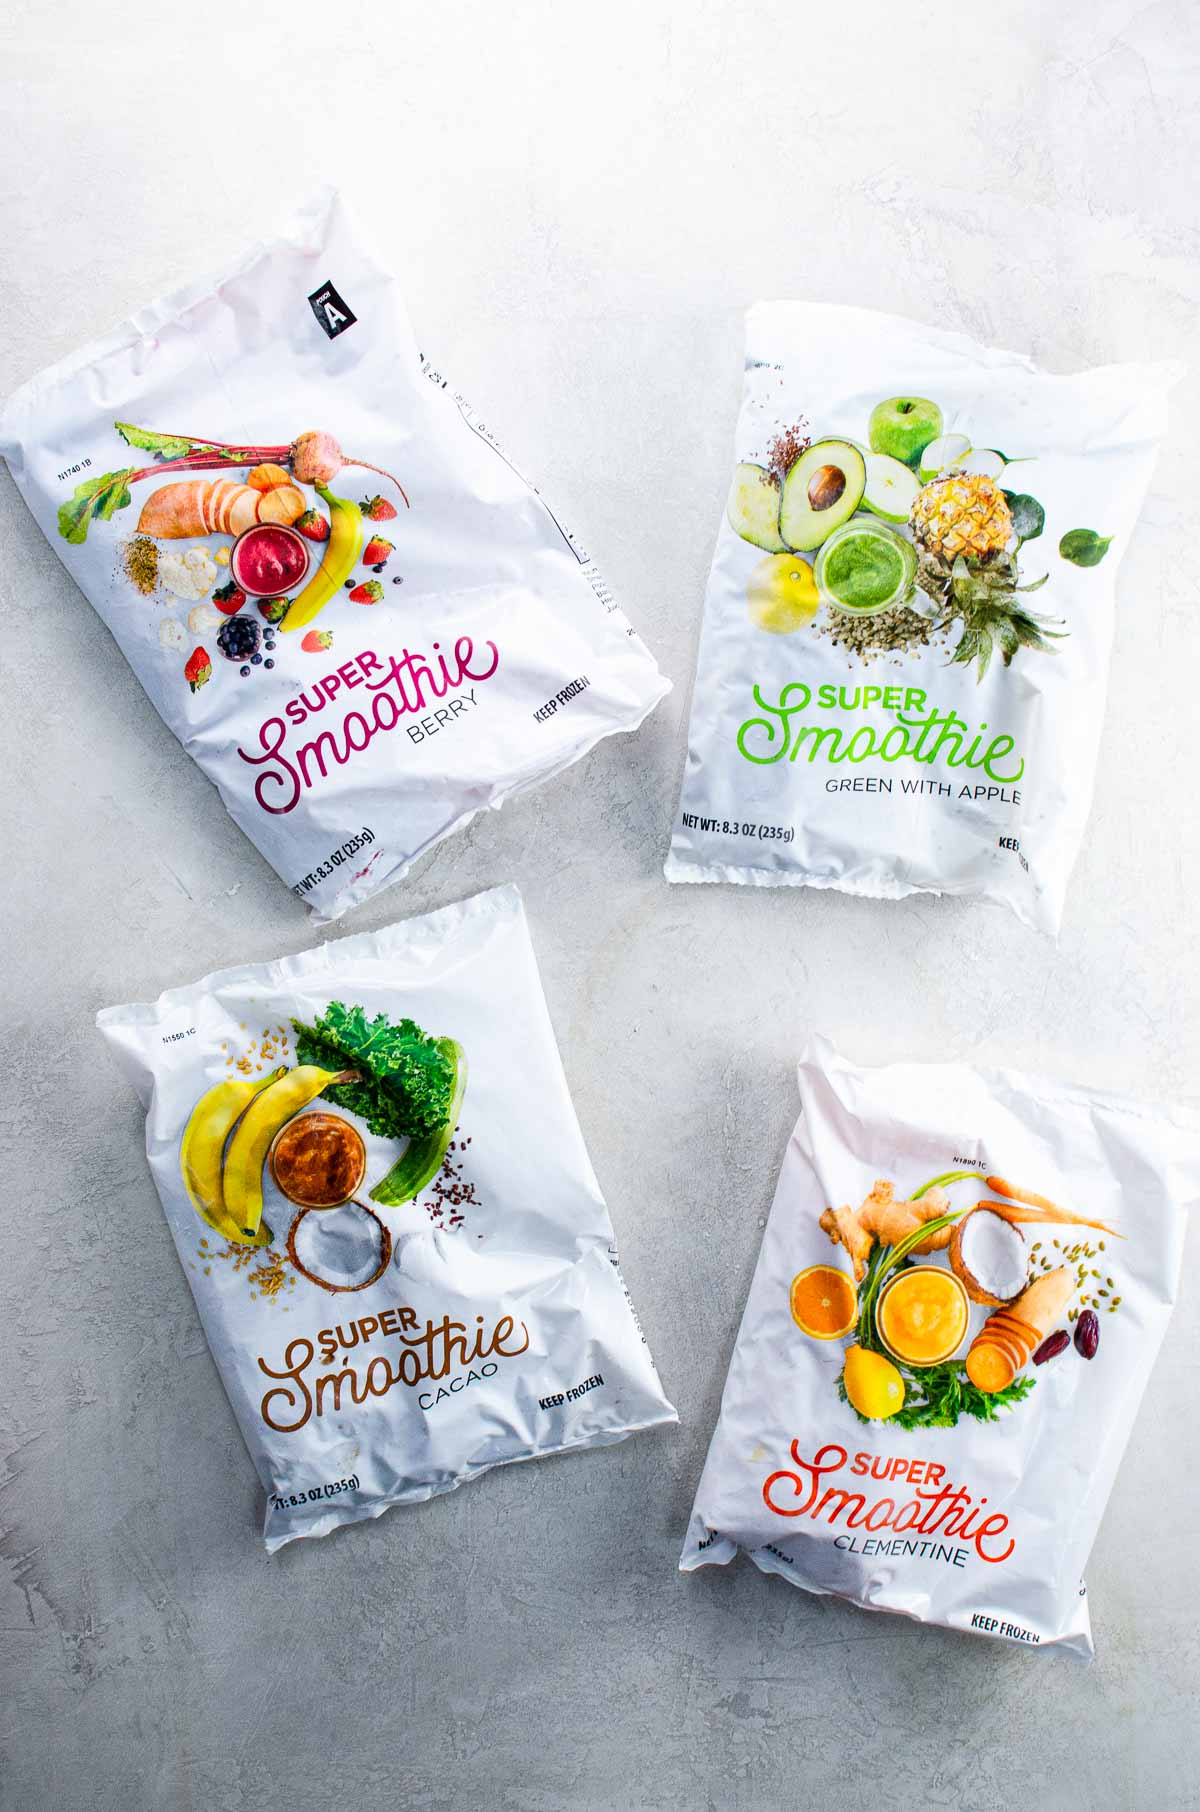 Packages of frozen smoothie ingredients